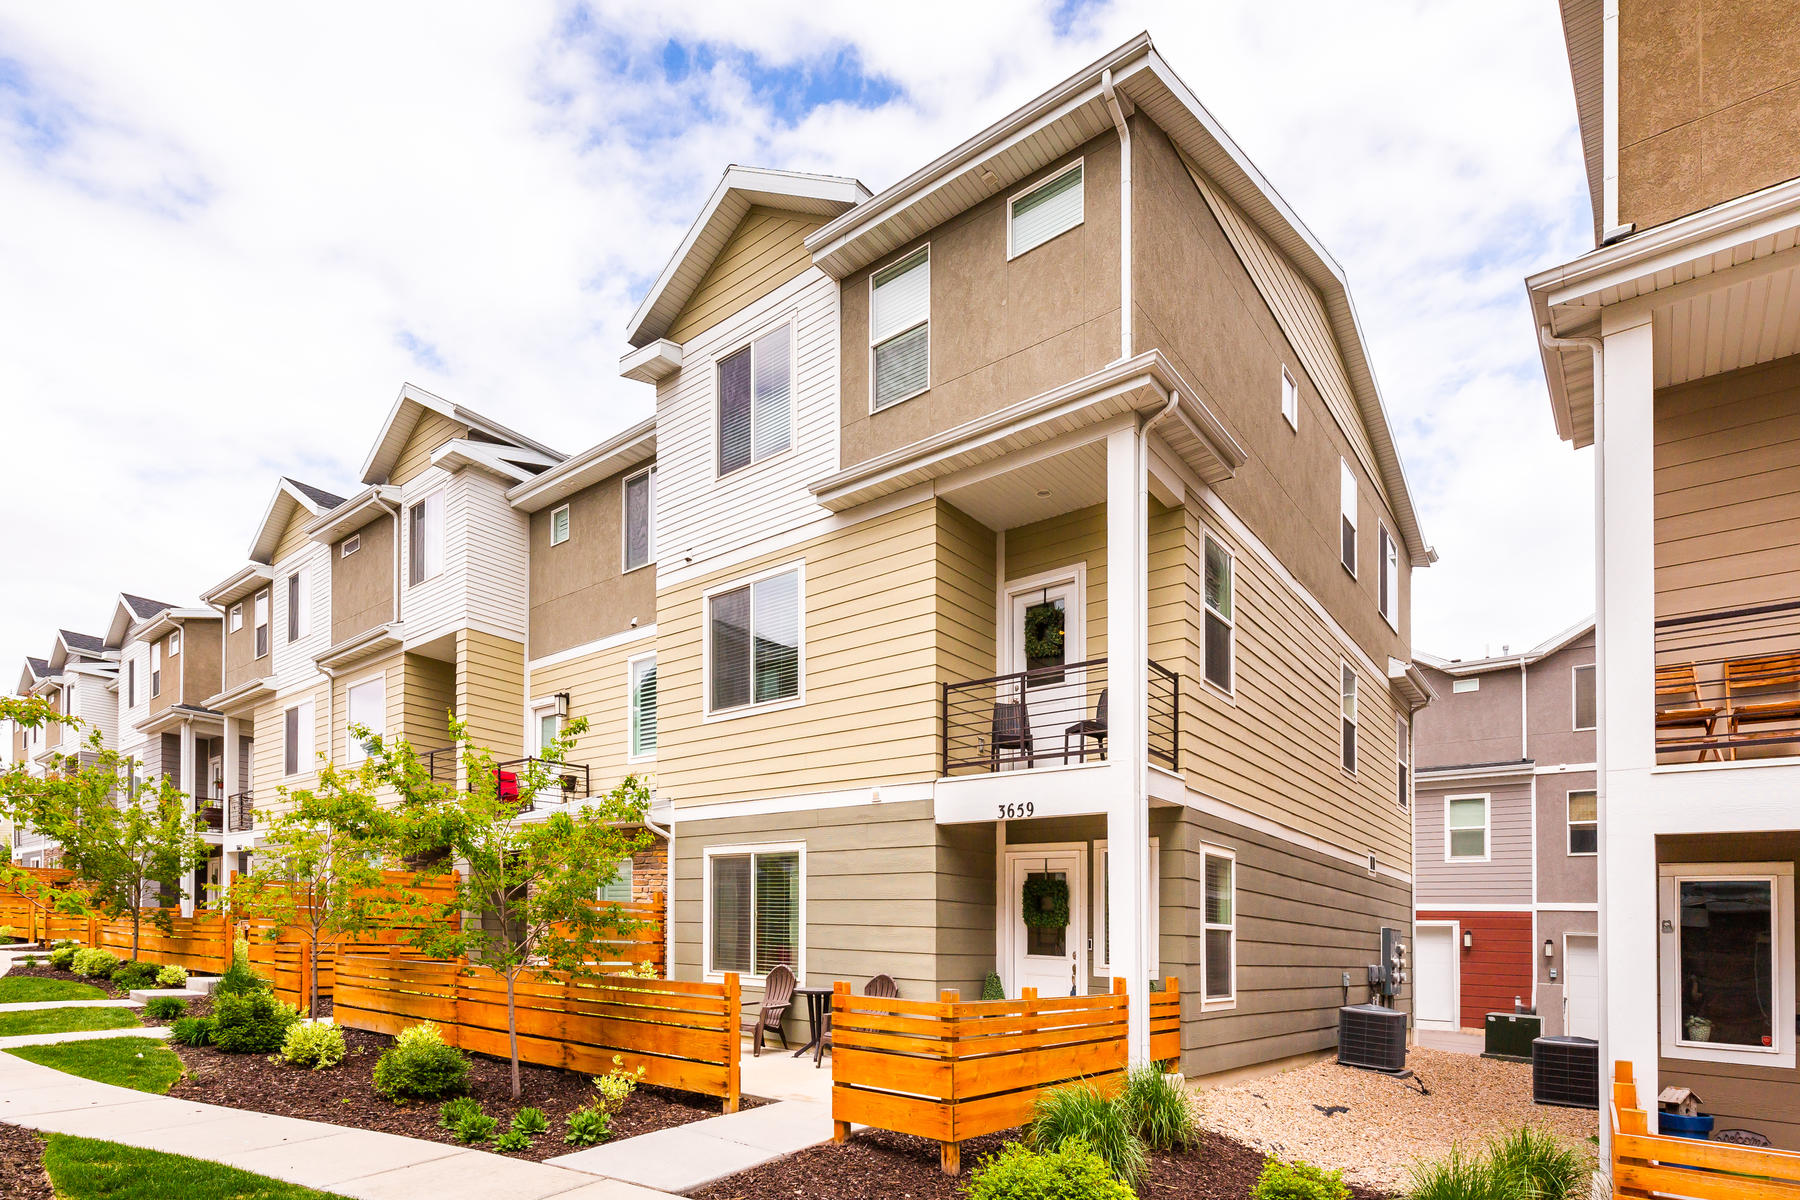 townhouses for Sale at Entertainer's Dream in a Highly Desired Area in South Jordan 3659 W Golden Sky Ln South Jordan, Utah 84009 United States